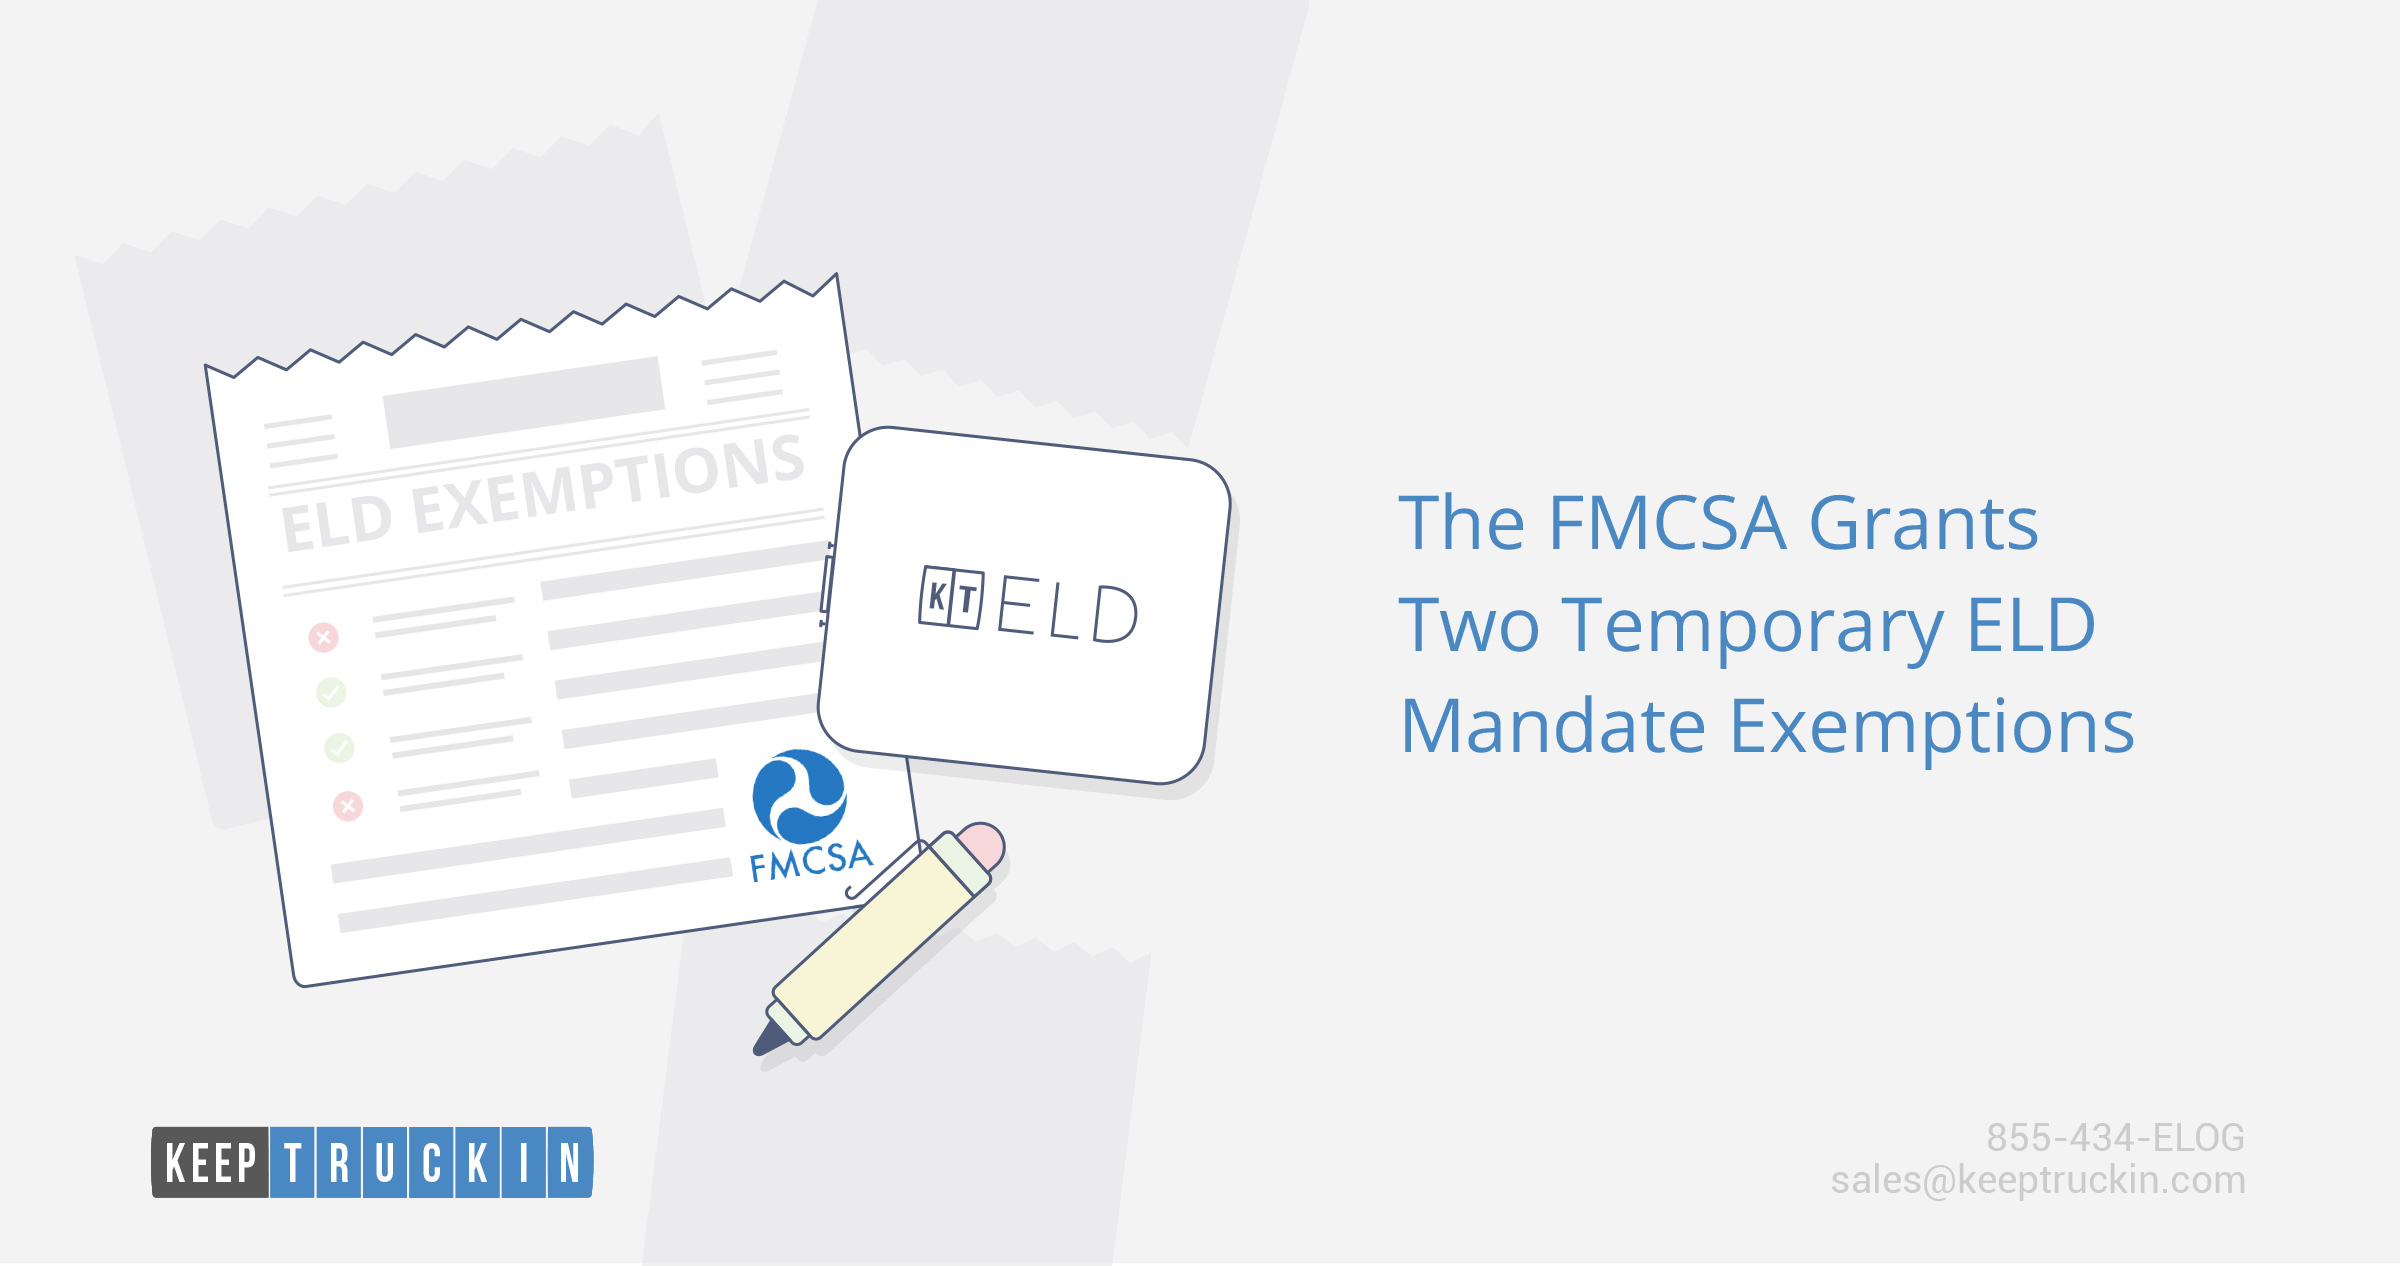 The FMCSA Grants Two Temporary ELD Mandate Exemptions